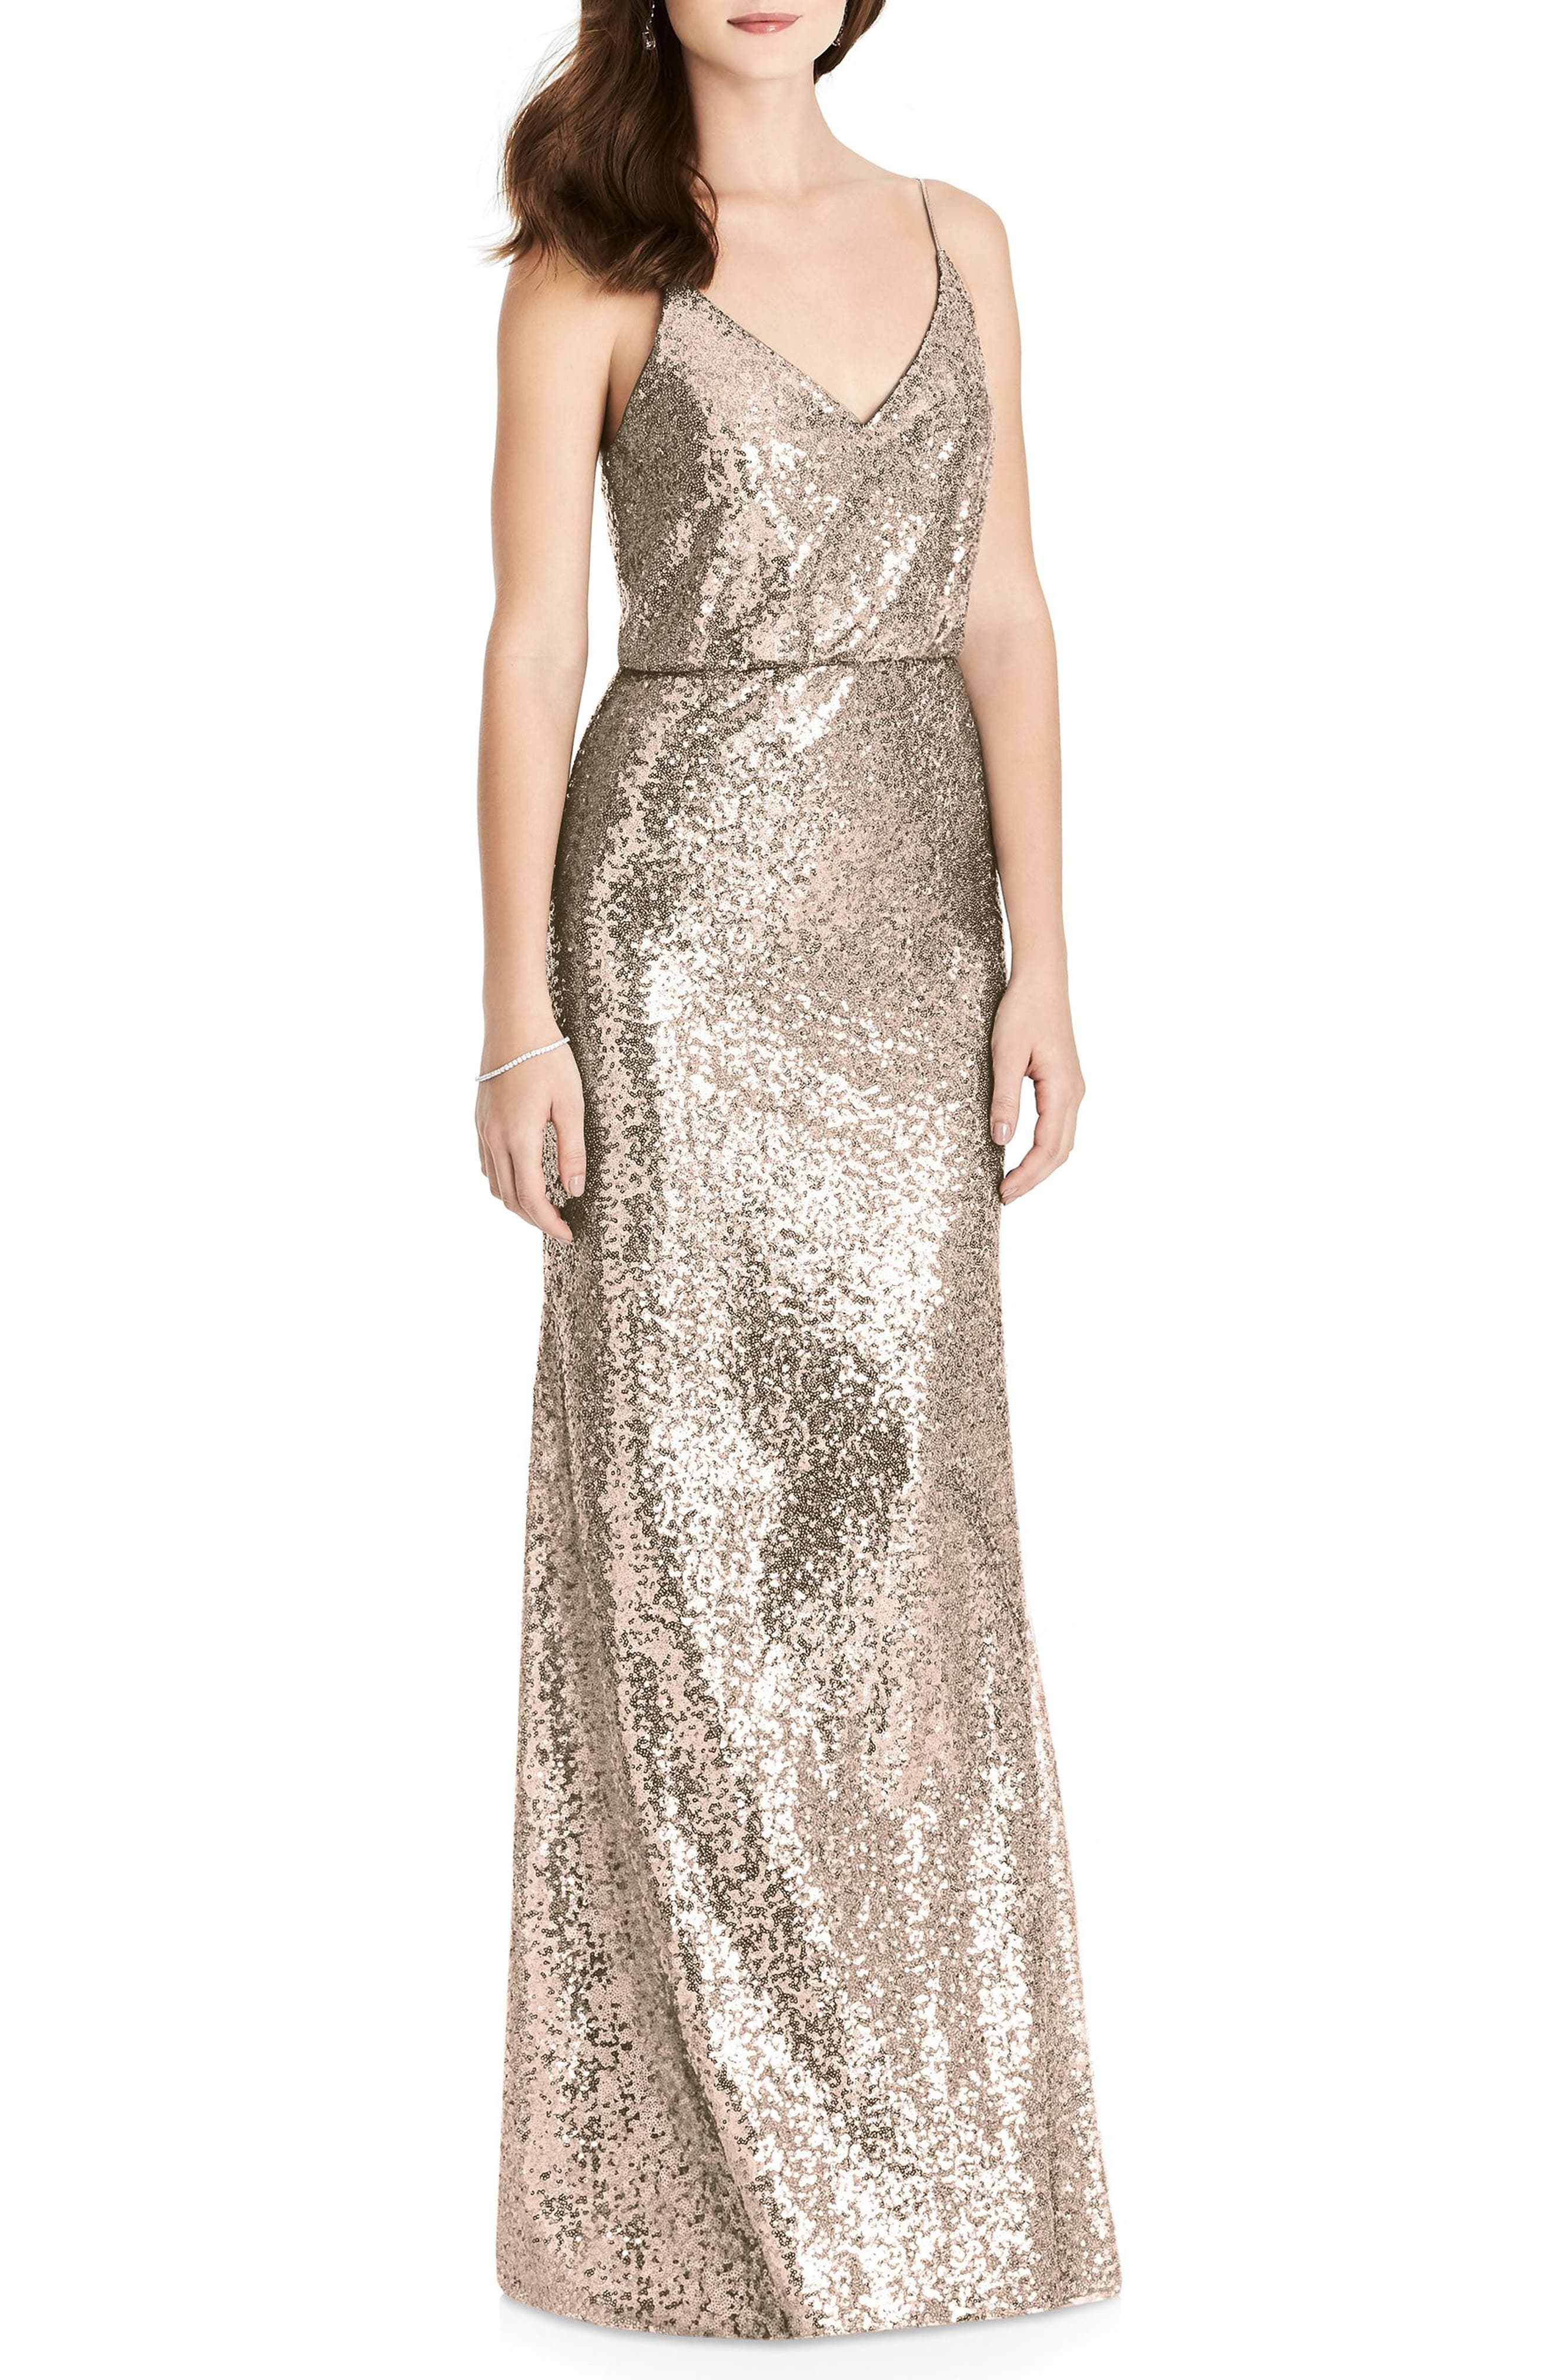 Alternate Image 1 Selected - After Six Sequin Blouson Gown